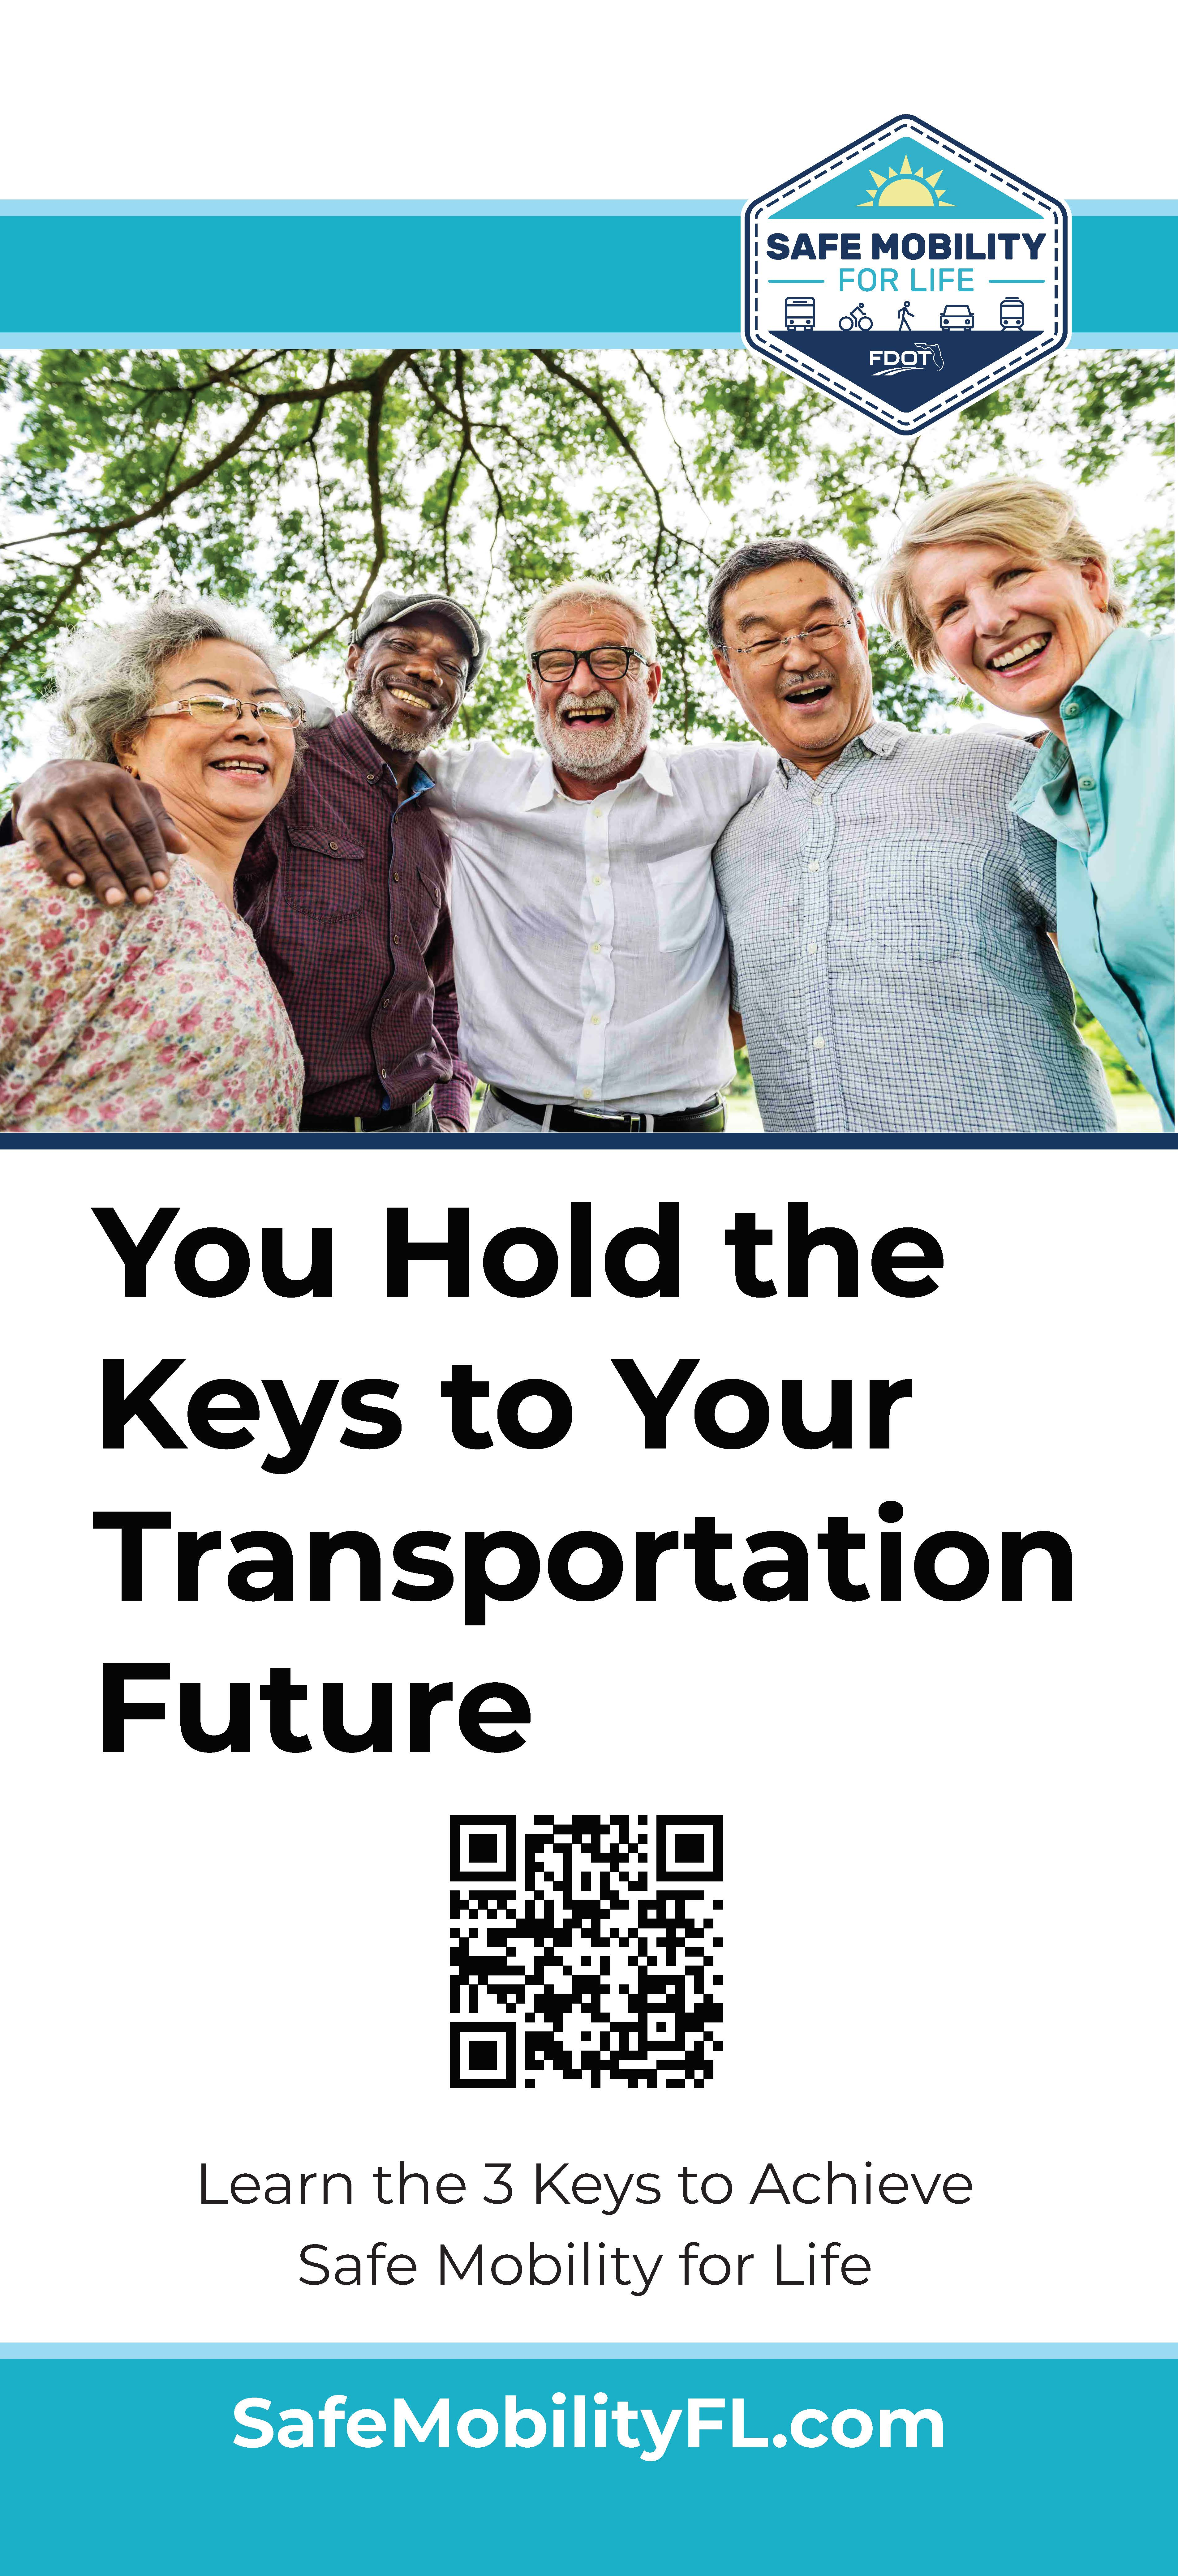 Keys to Your Transportation Future